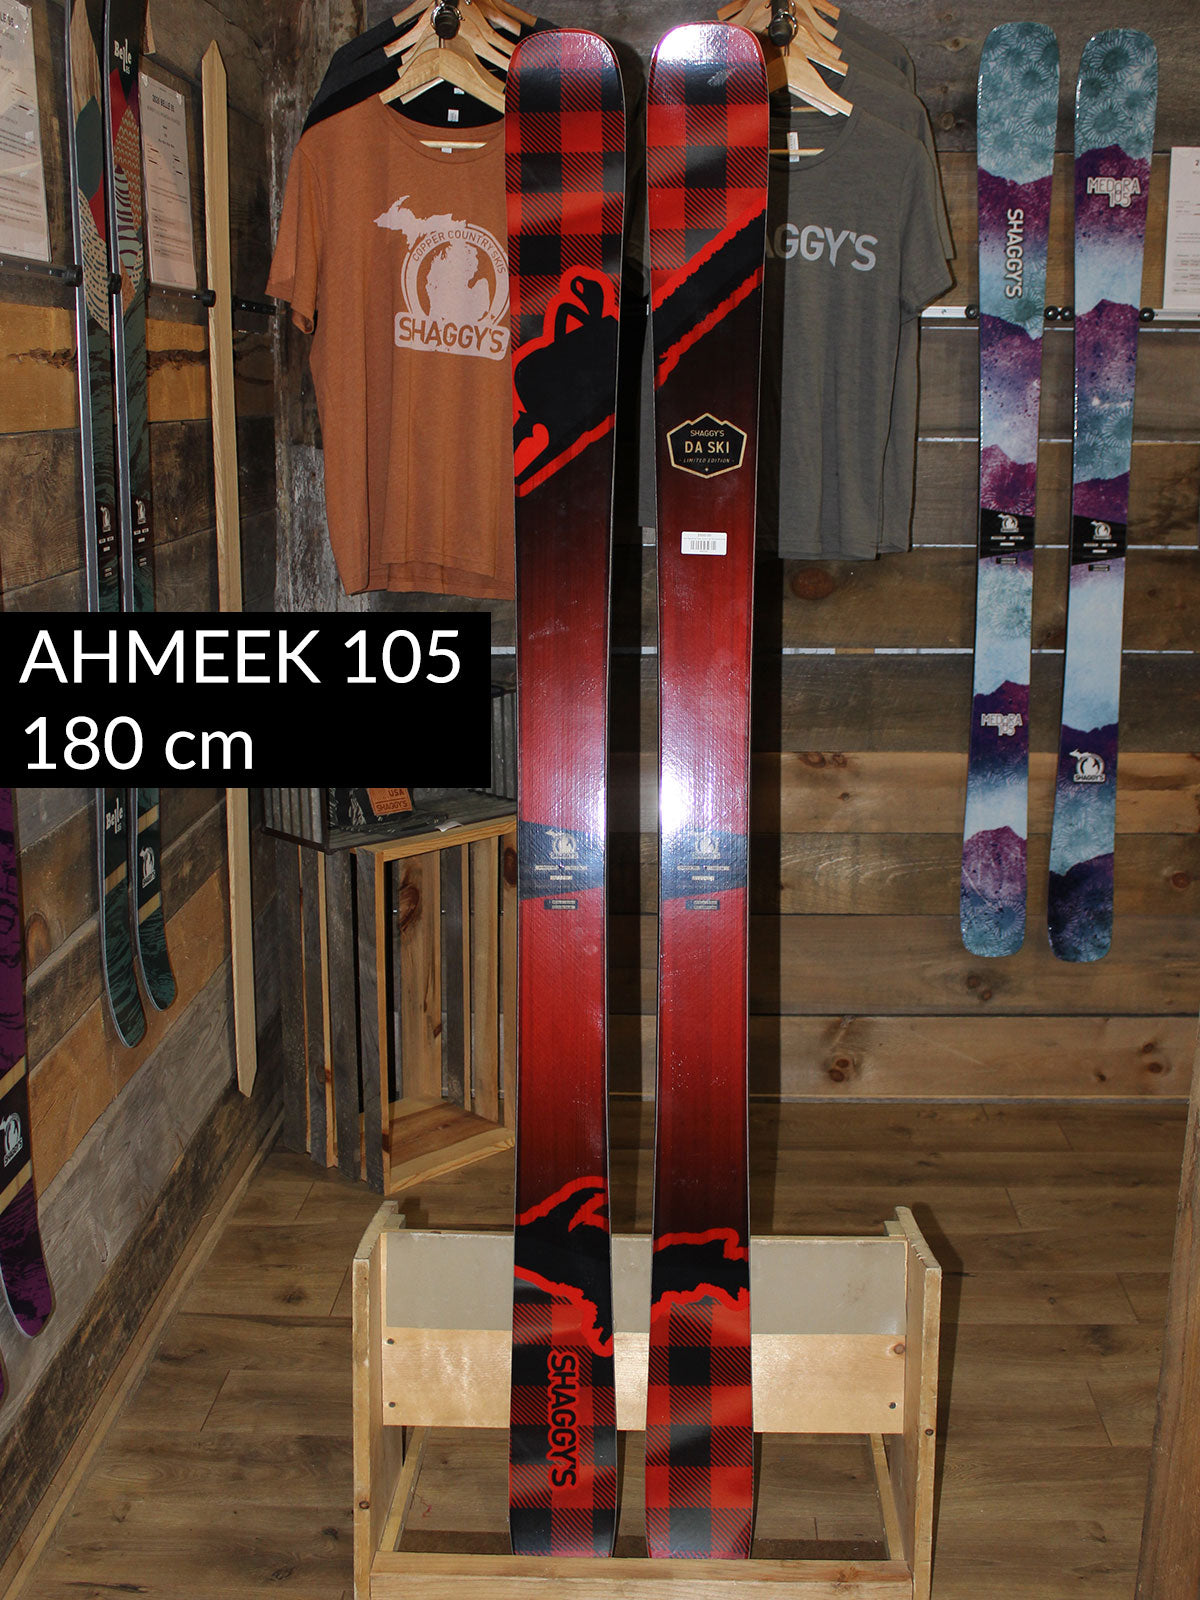 2020 Ahmeek 105 - 180 cm (Limited Edition Yooper Test Graphic)